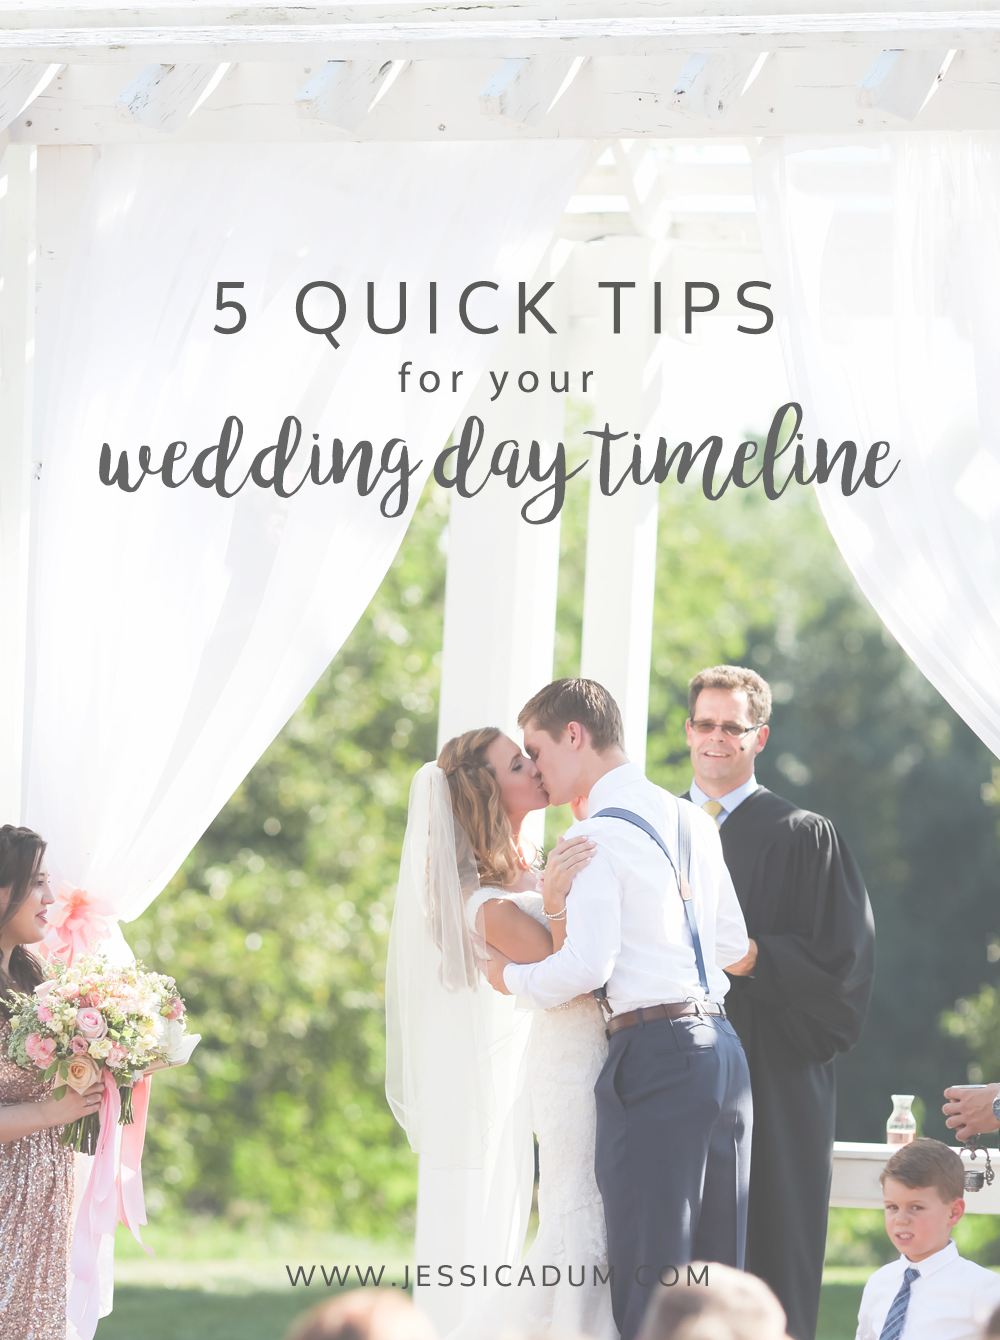 5 Quick Tips for your Wedding Day Timeline; wedding day timeline tips; quick wedding timeline tips